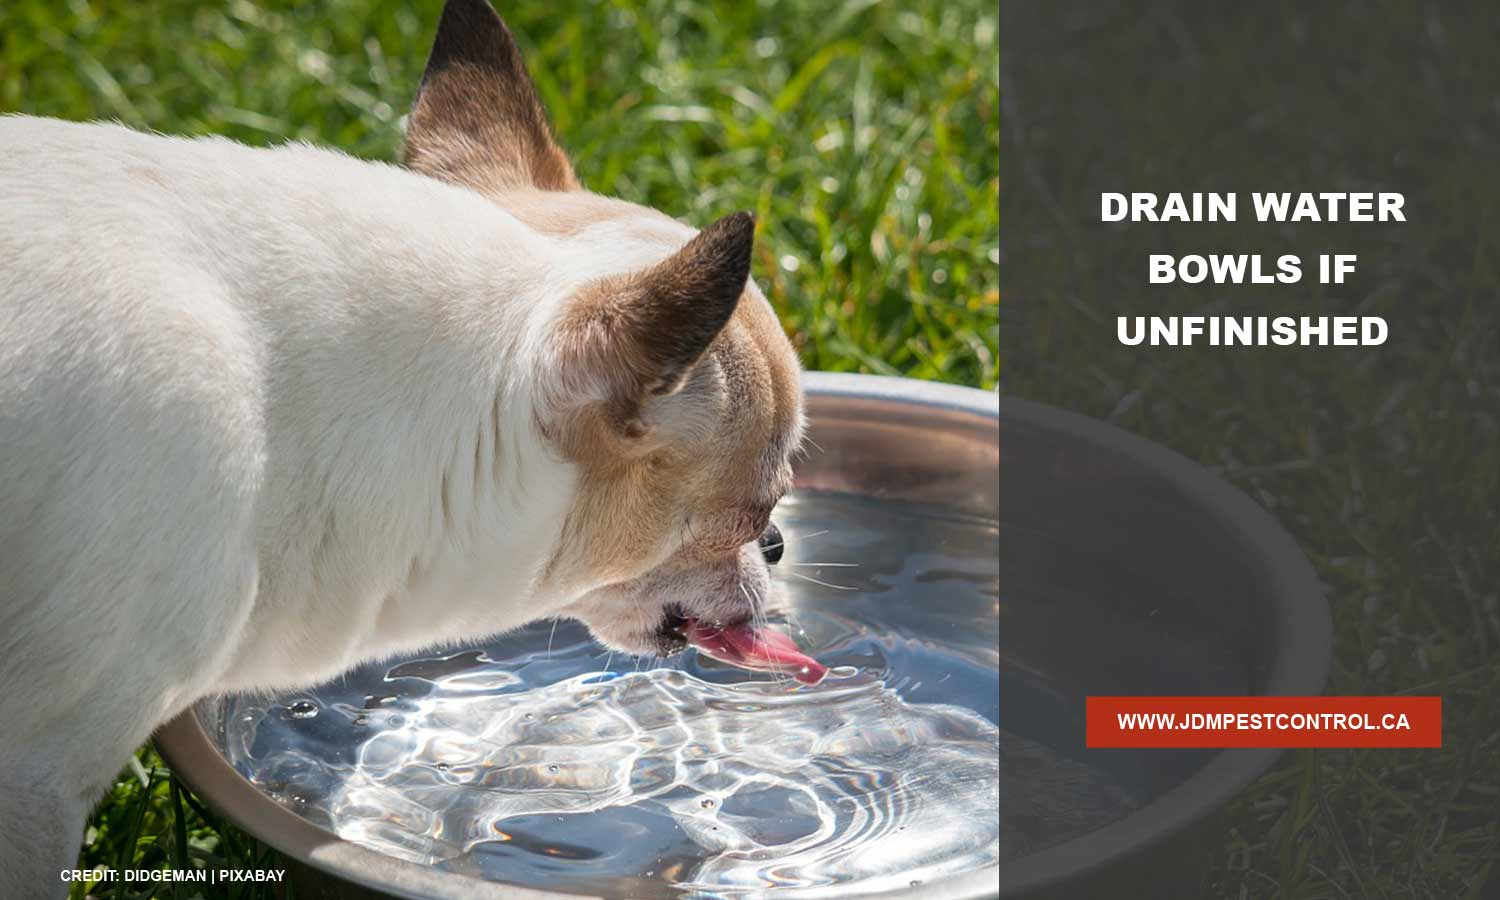 Drain water bowls if unfinished